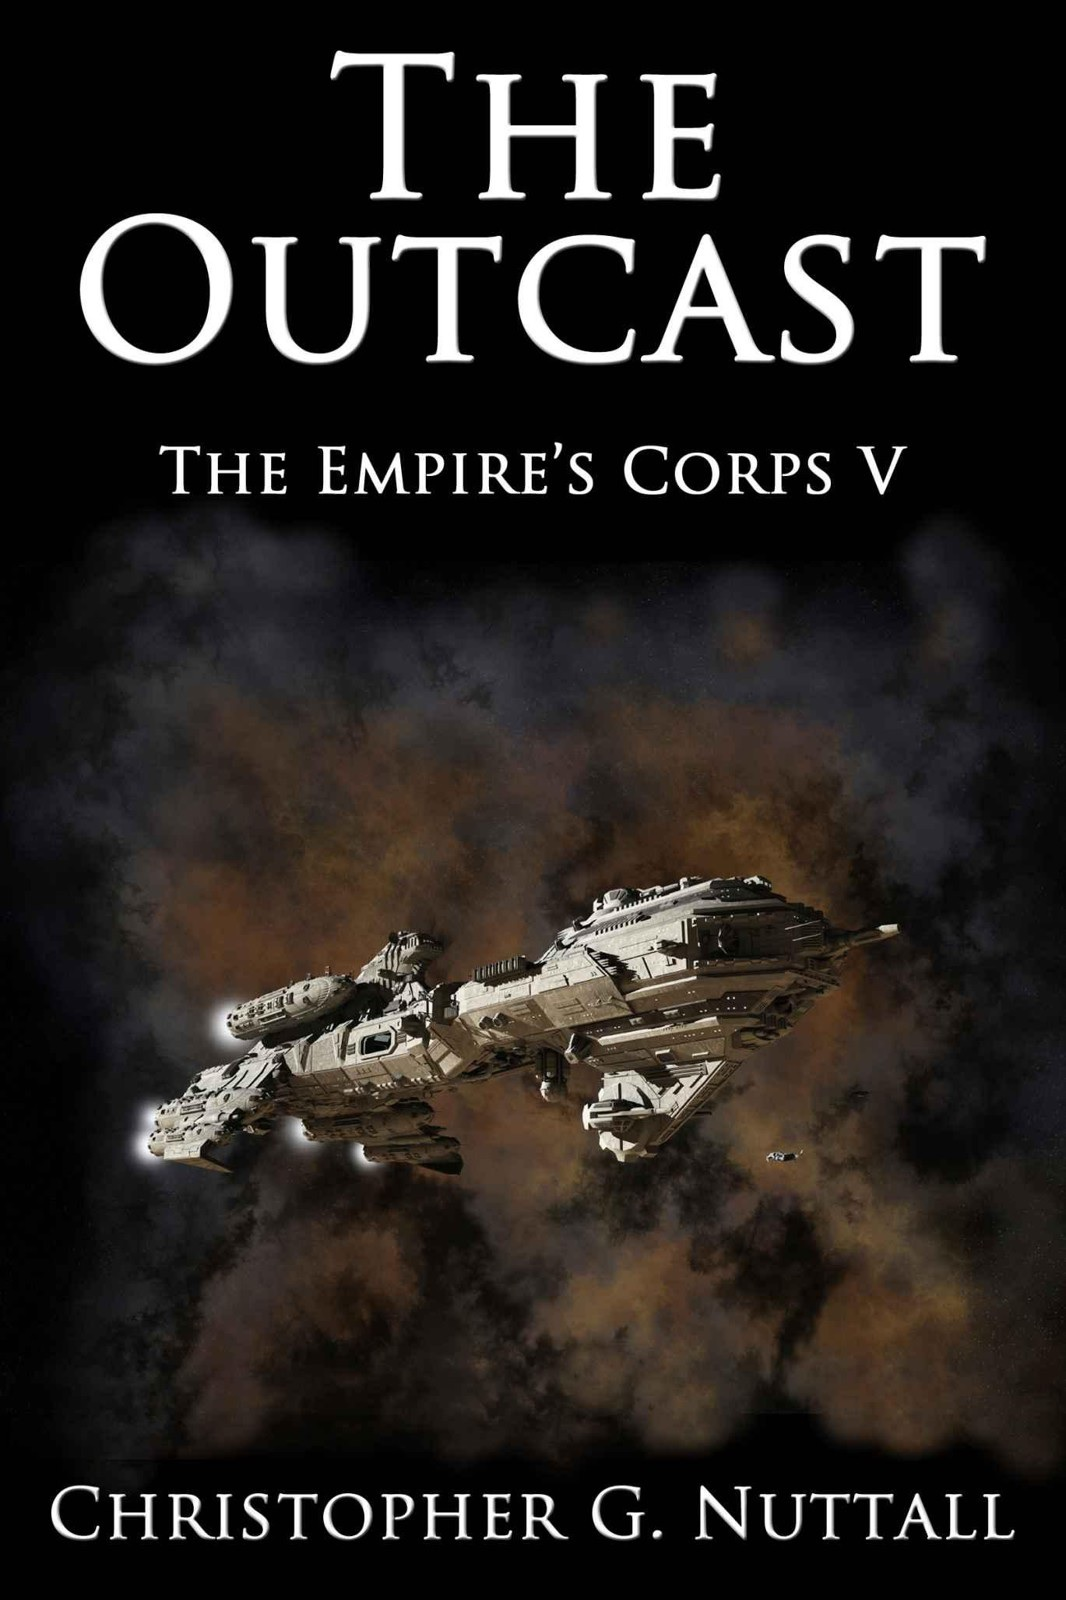 The Outcast: No marines and not really what I expected but a very enjoyable book nonetheless